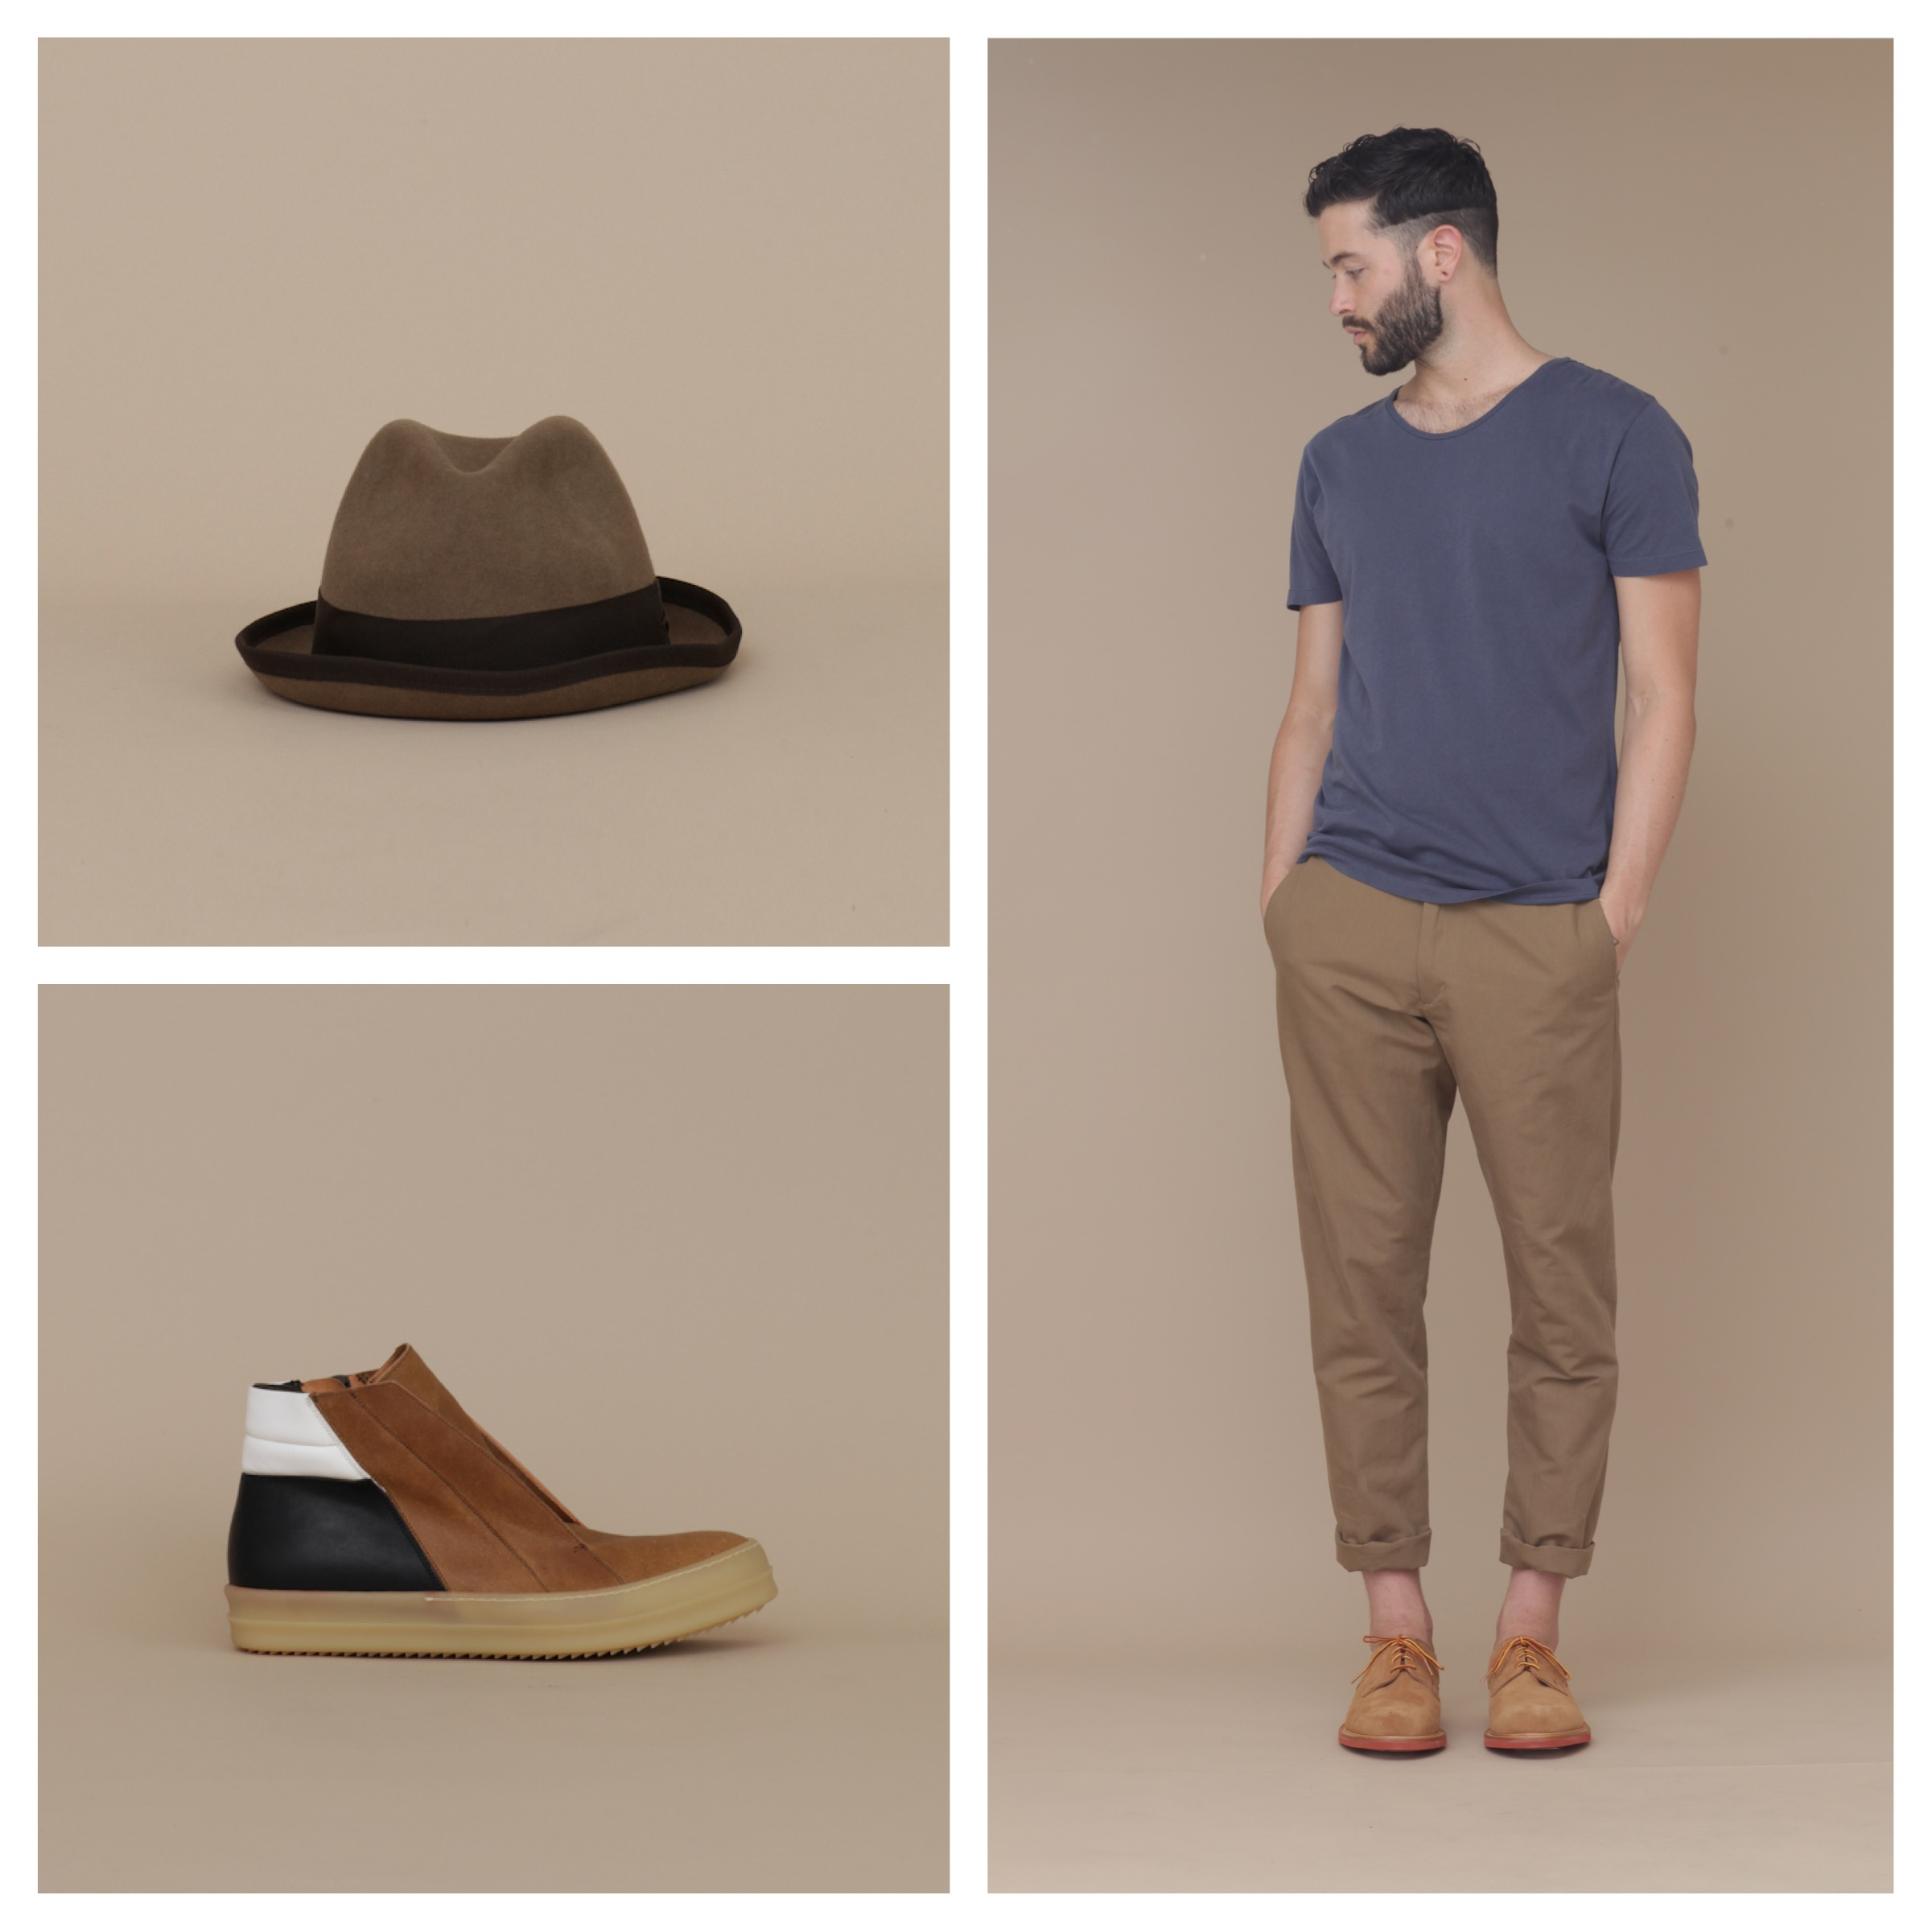 Clockwise from top left: Hope hat, Hope tee and trousers with Mark McNairy New Amsterdam derbies, Rick Owens shoes